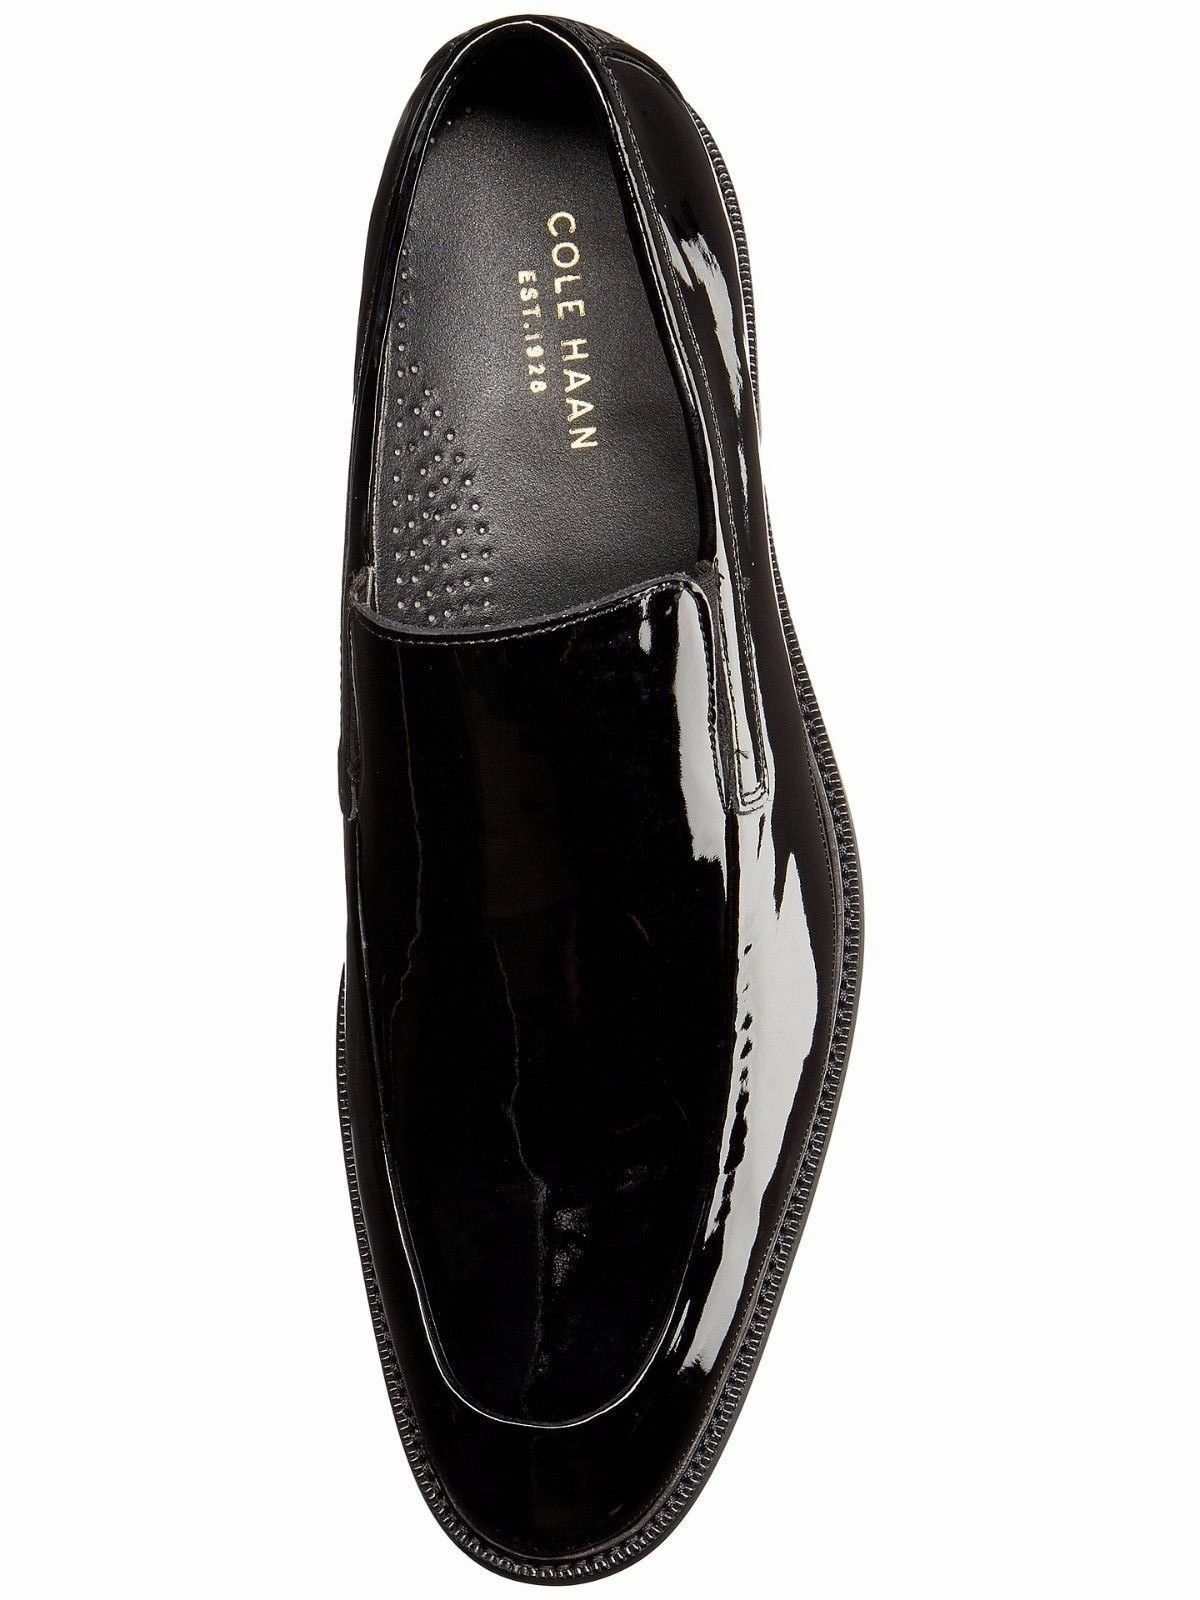 Cole Haan Men's Warren Tuxedo Venetian Tuxedo Warren Dress Shoess Black Patent 9 NEW IN BOX cb54df